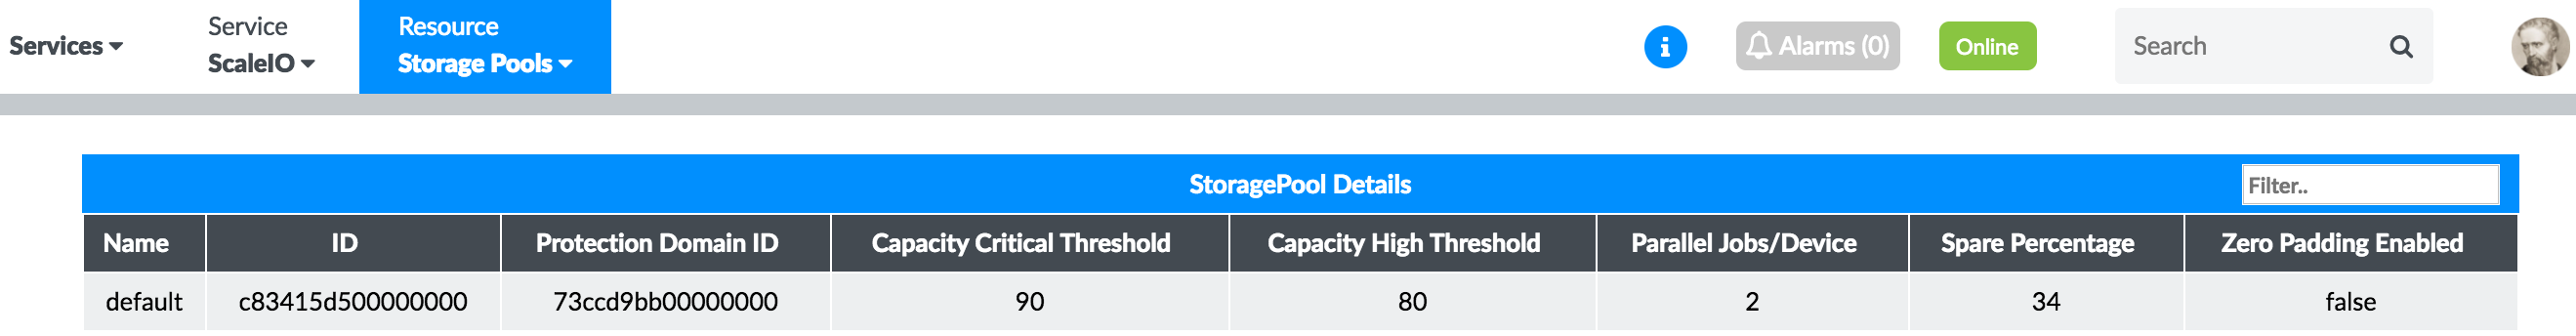 Real-Time Status of